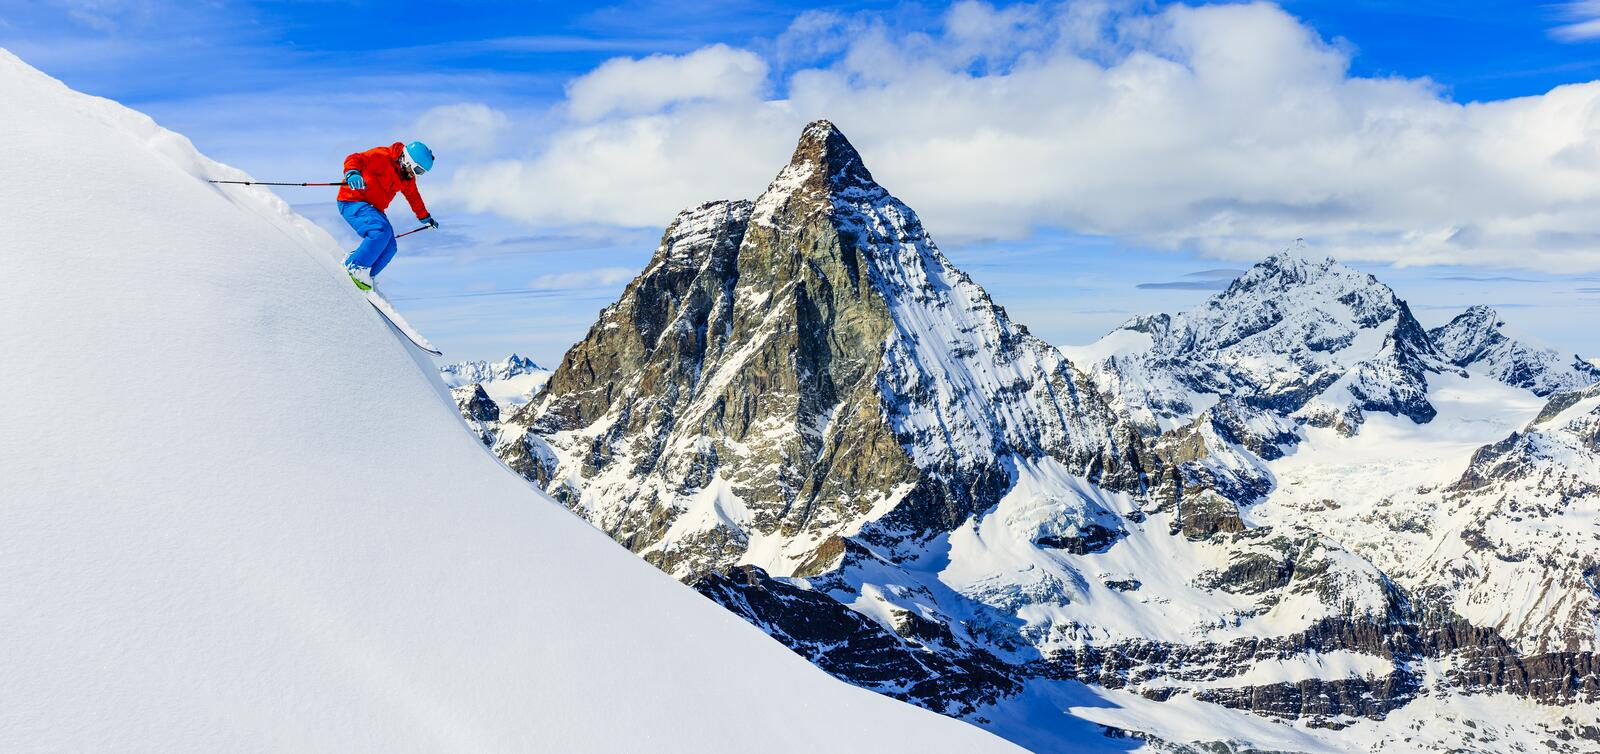 Skier skiing downhill in high mountains in fresh powder snow. Sn. Ow mountain range with Matterhorn in background. Zermatt Alps region Switzerland stock photo